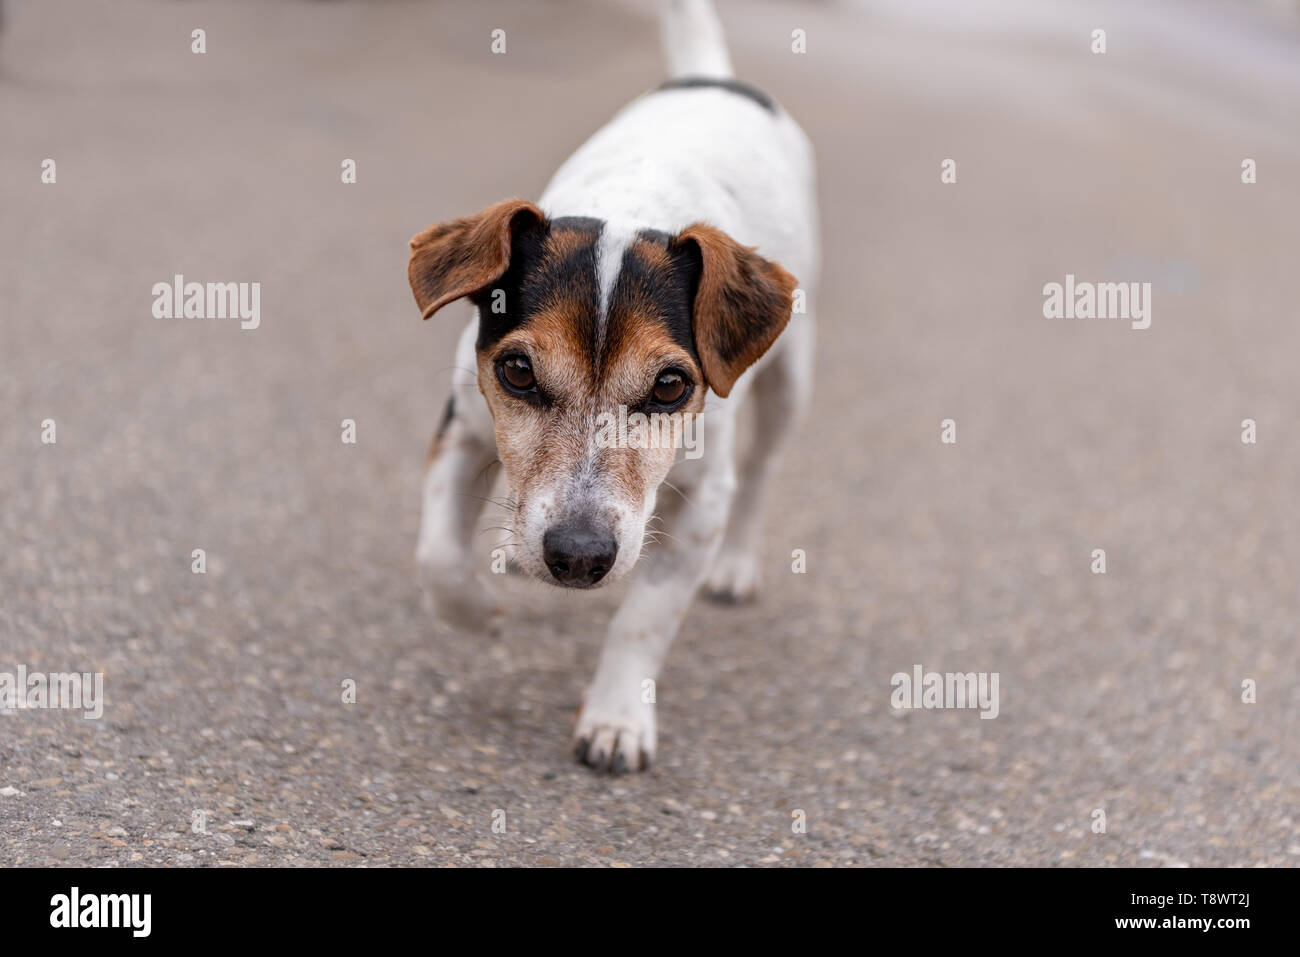 Jack Russell Terrier dog walking on the street - Stock Image